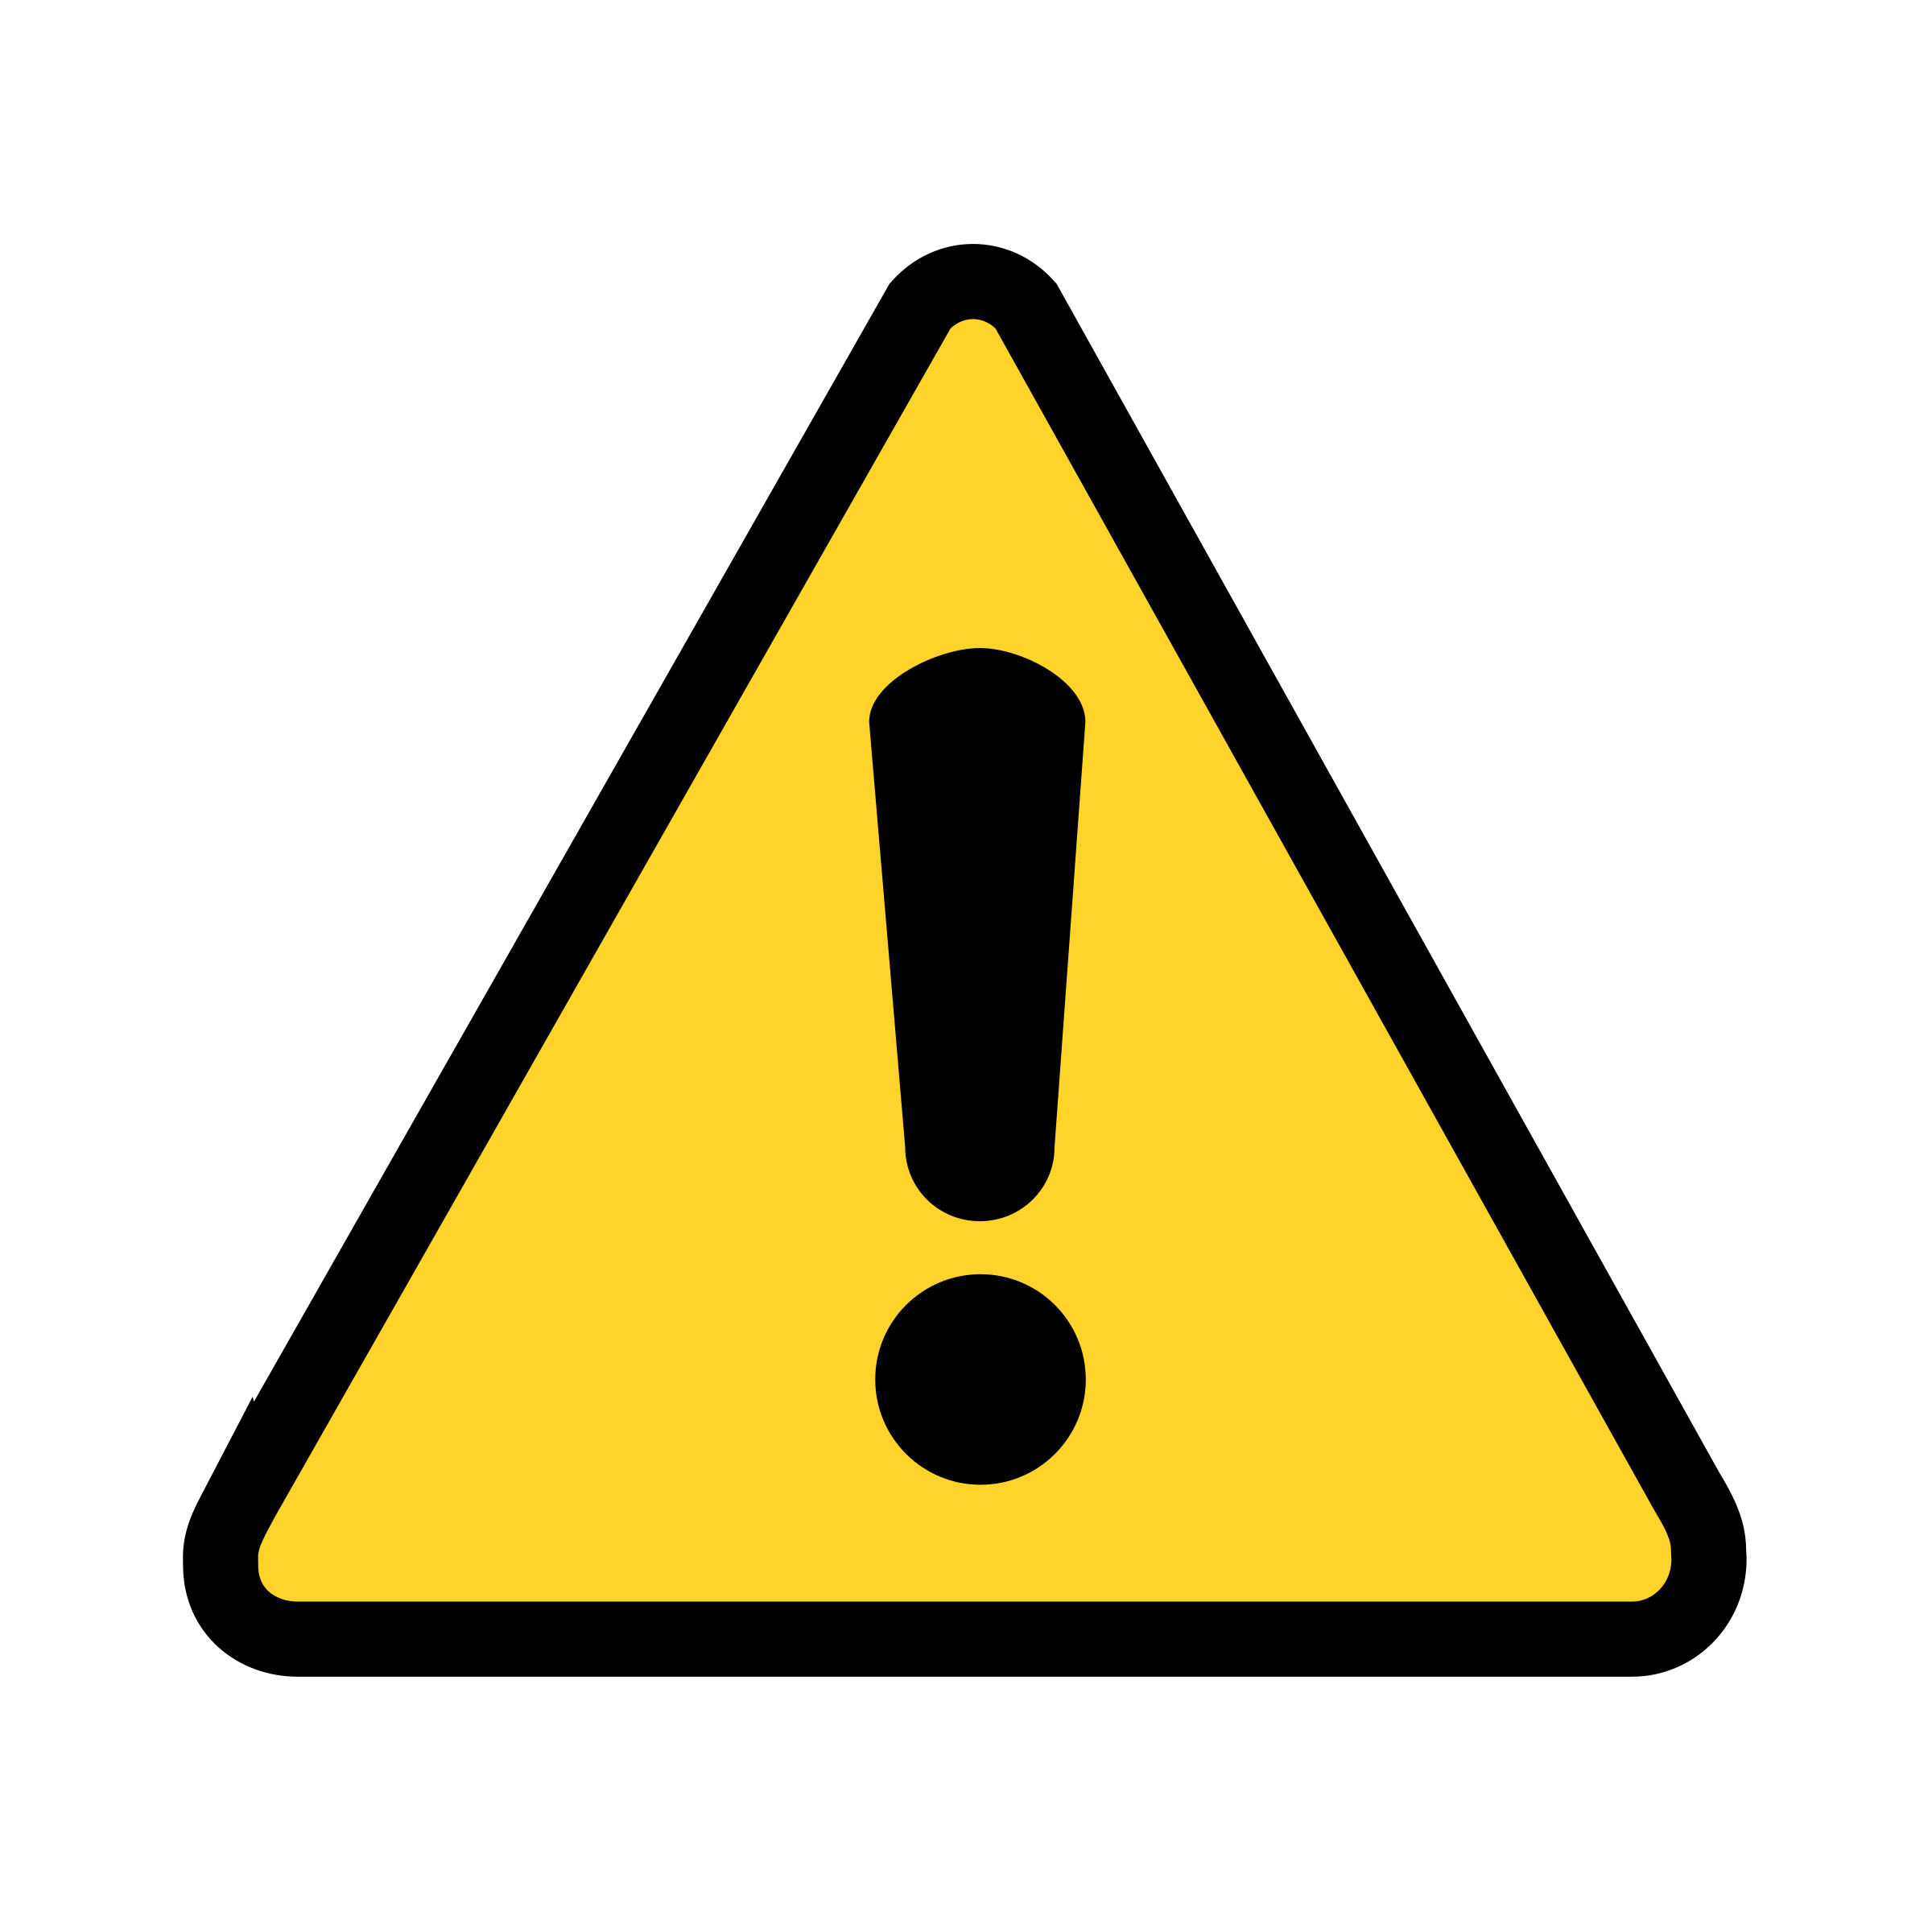 warning-icon-png-12.jpg